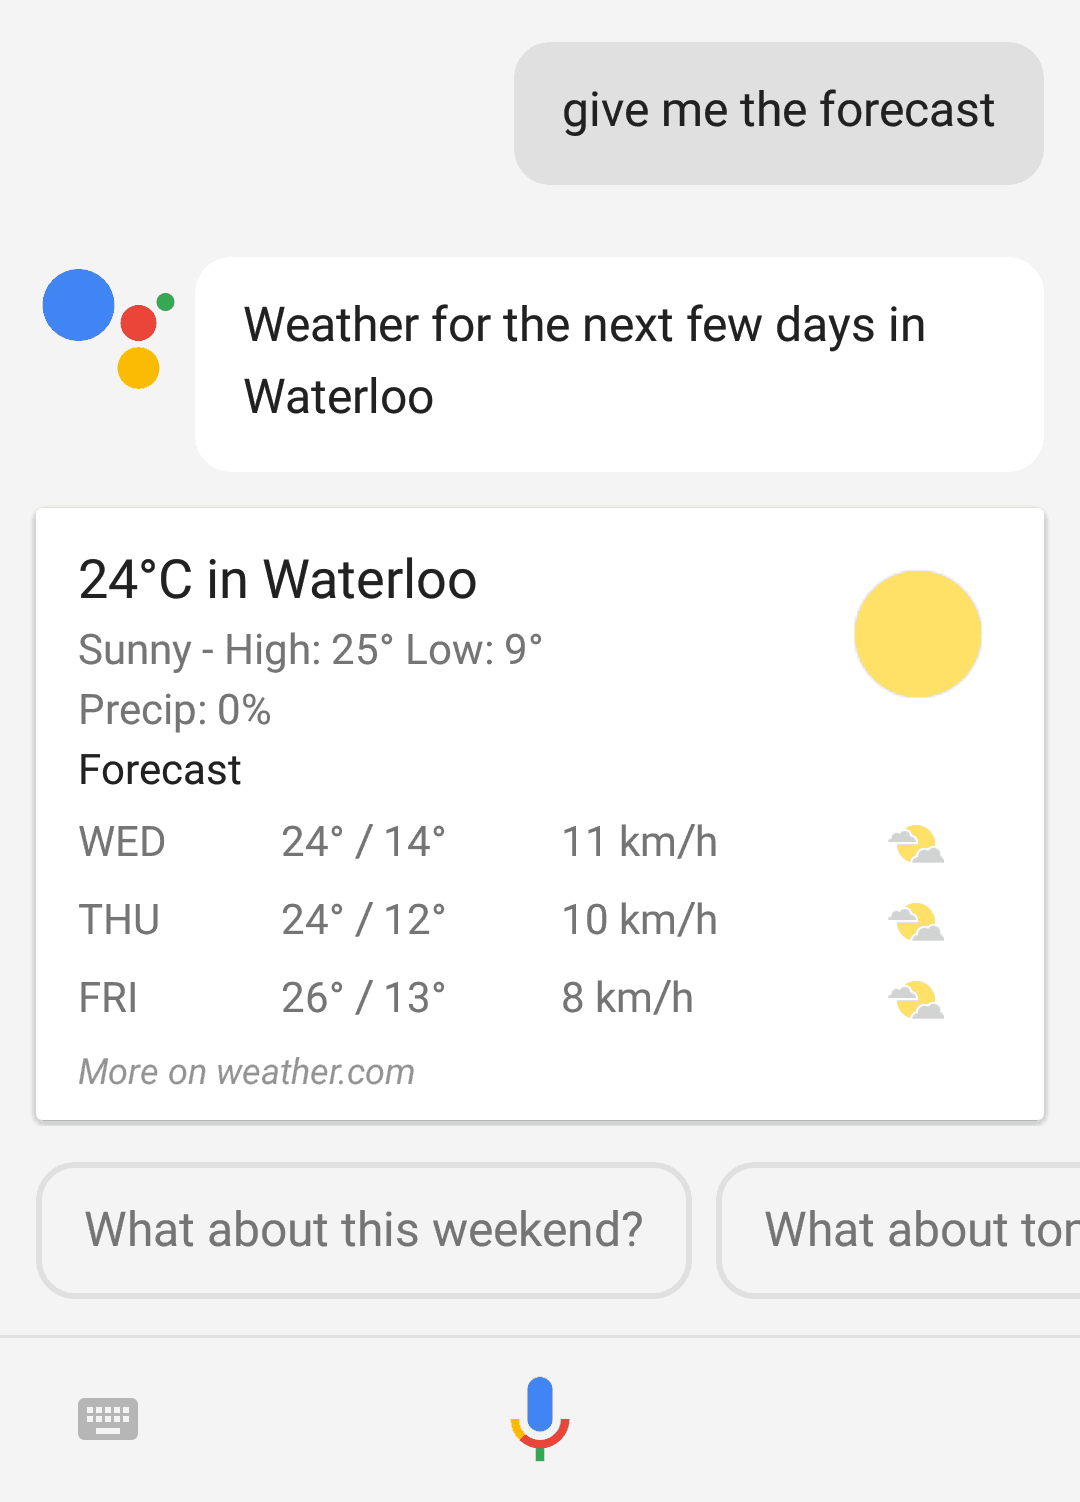 Google Assistant updating dynamic information